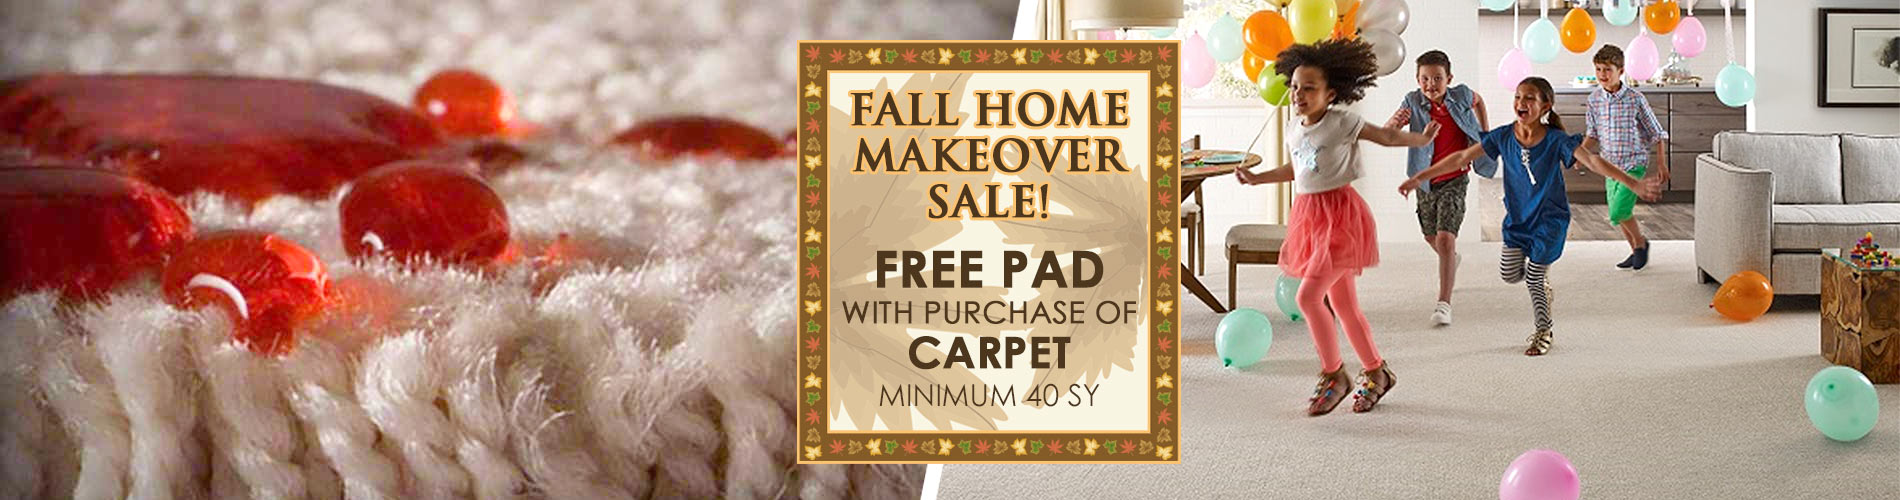 Fall Home Makeover Sale! Free Pad with Purchase of Carpet - Minimum 40 SY at  Murley's Floor Covering LLC!